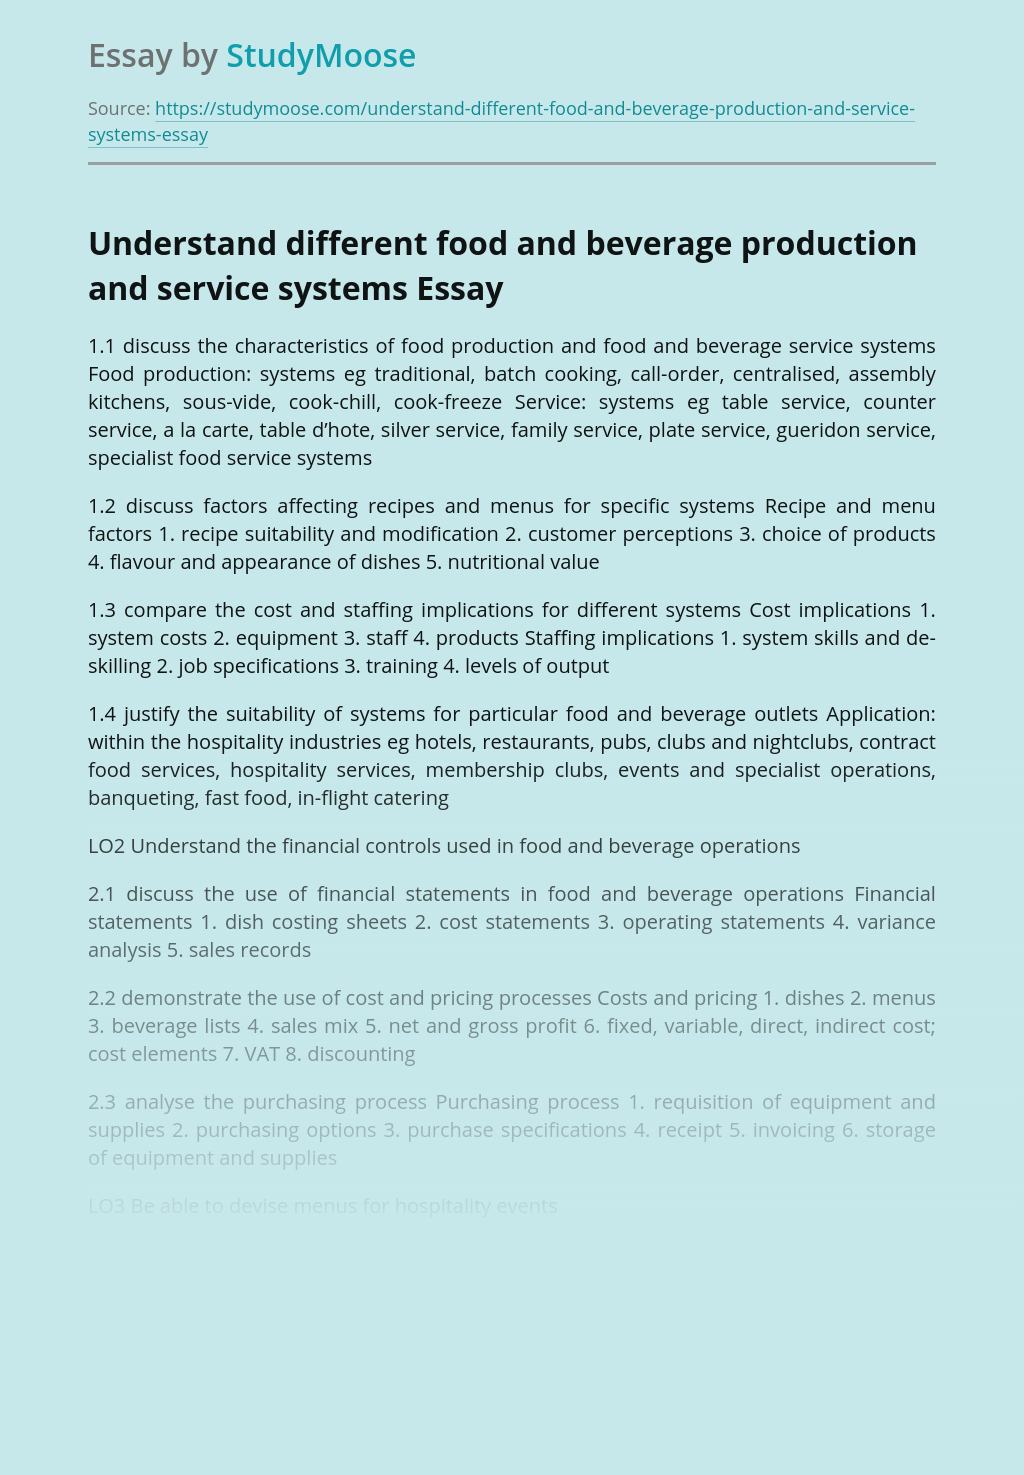 Understand different food and beverage production and service systems